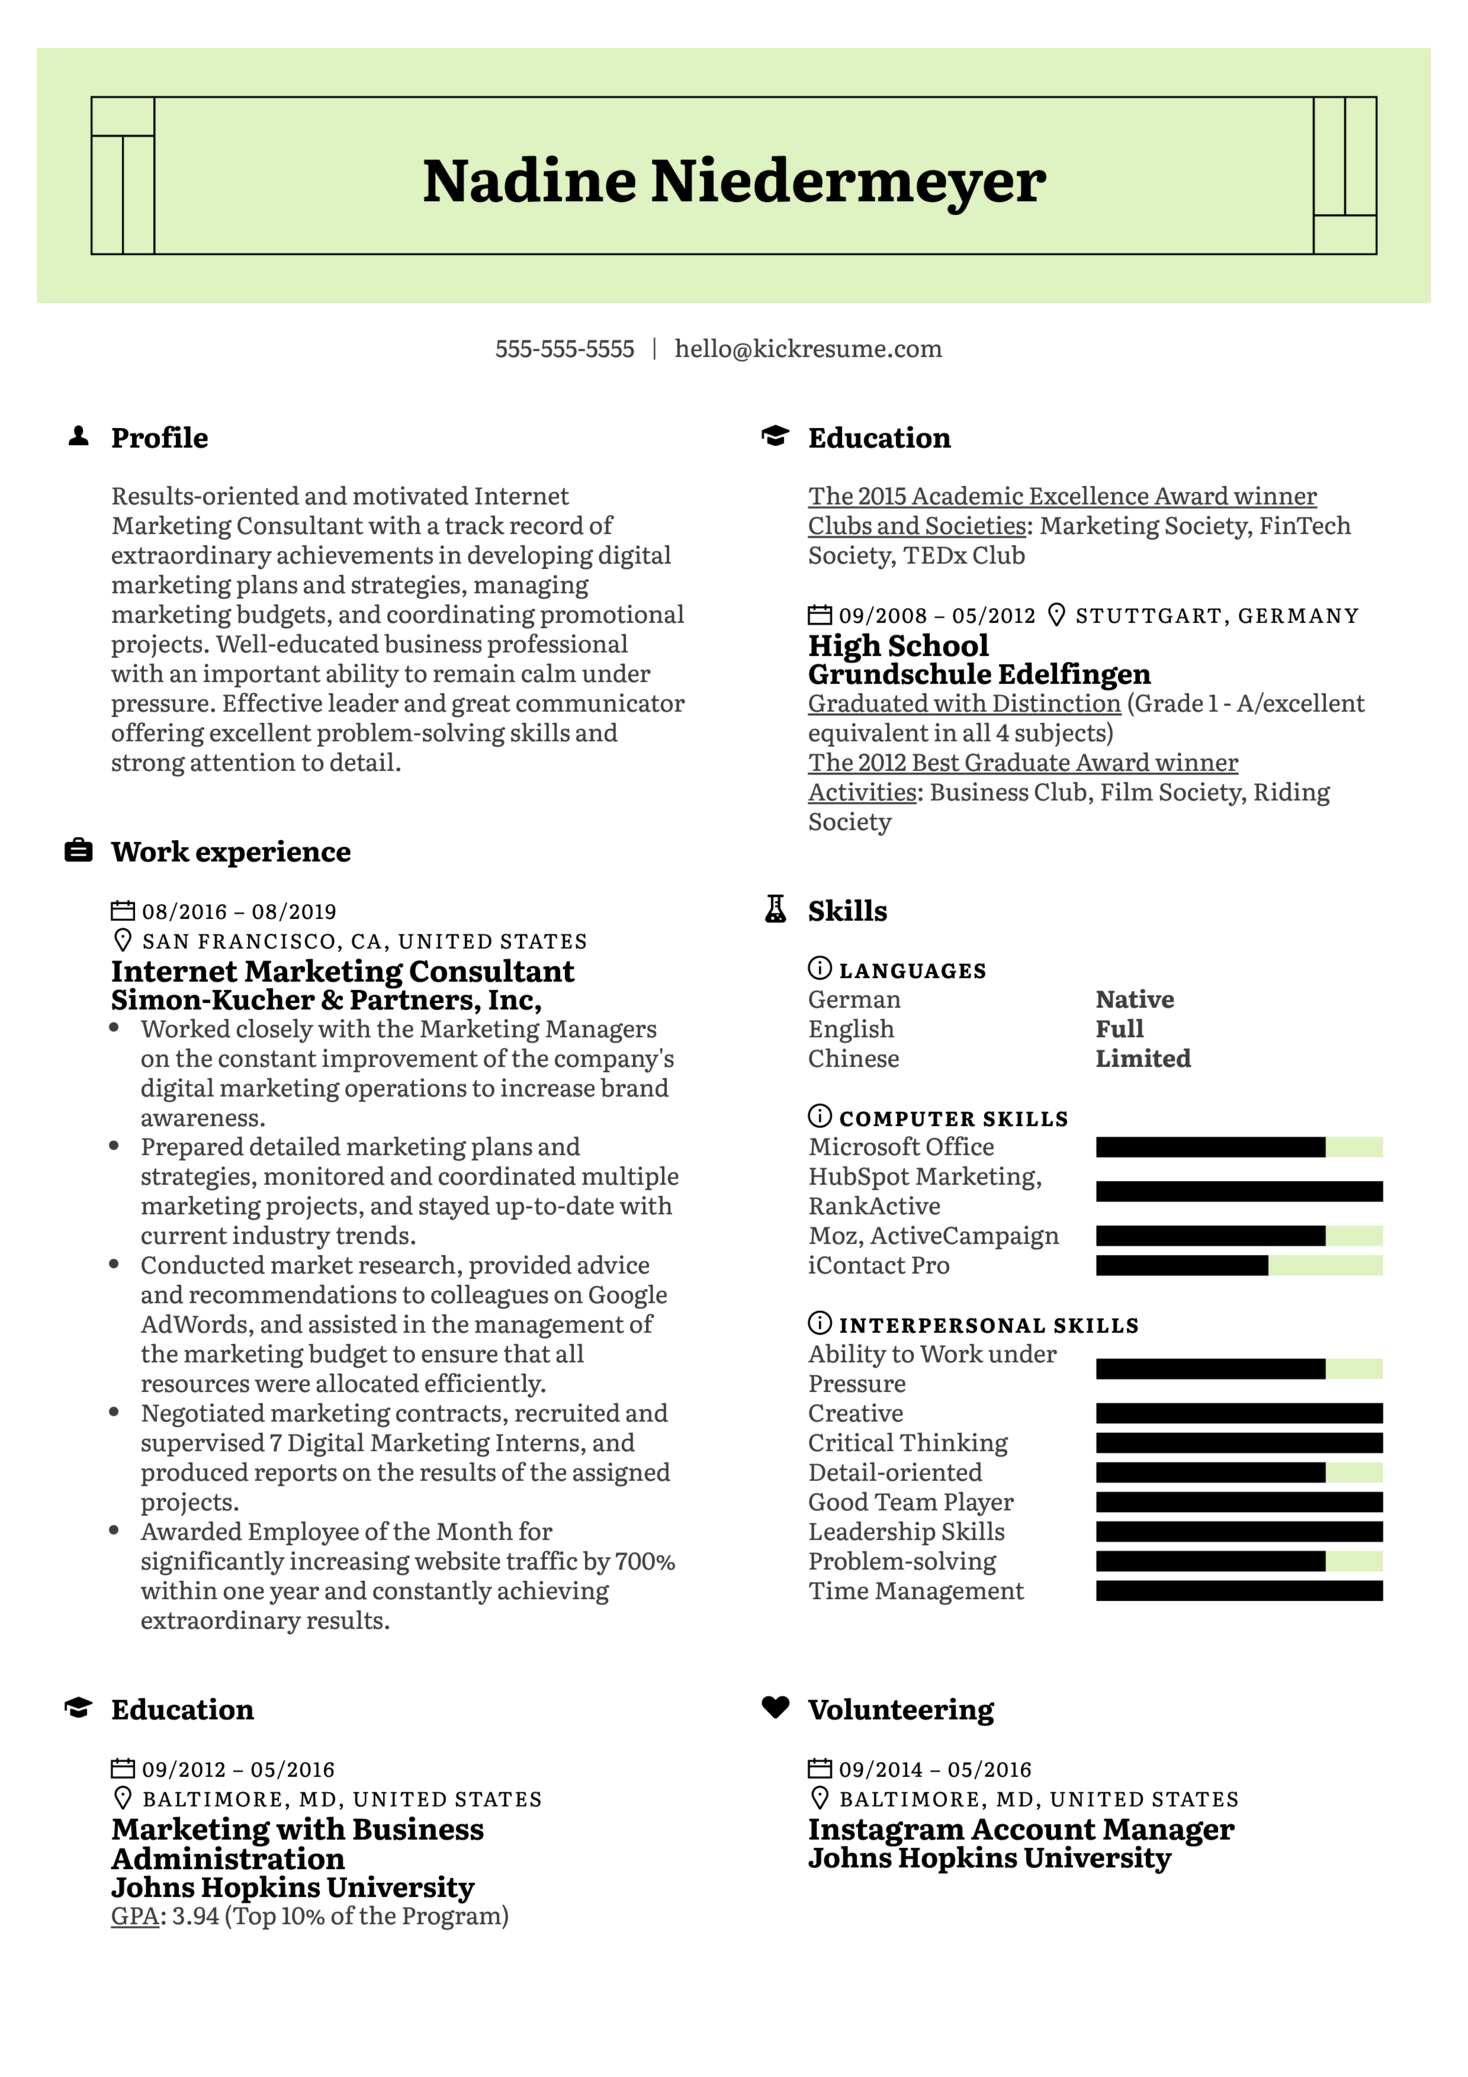 resume examples by real people  internet marketing consultant resume example